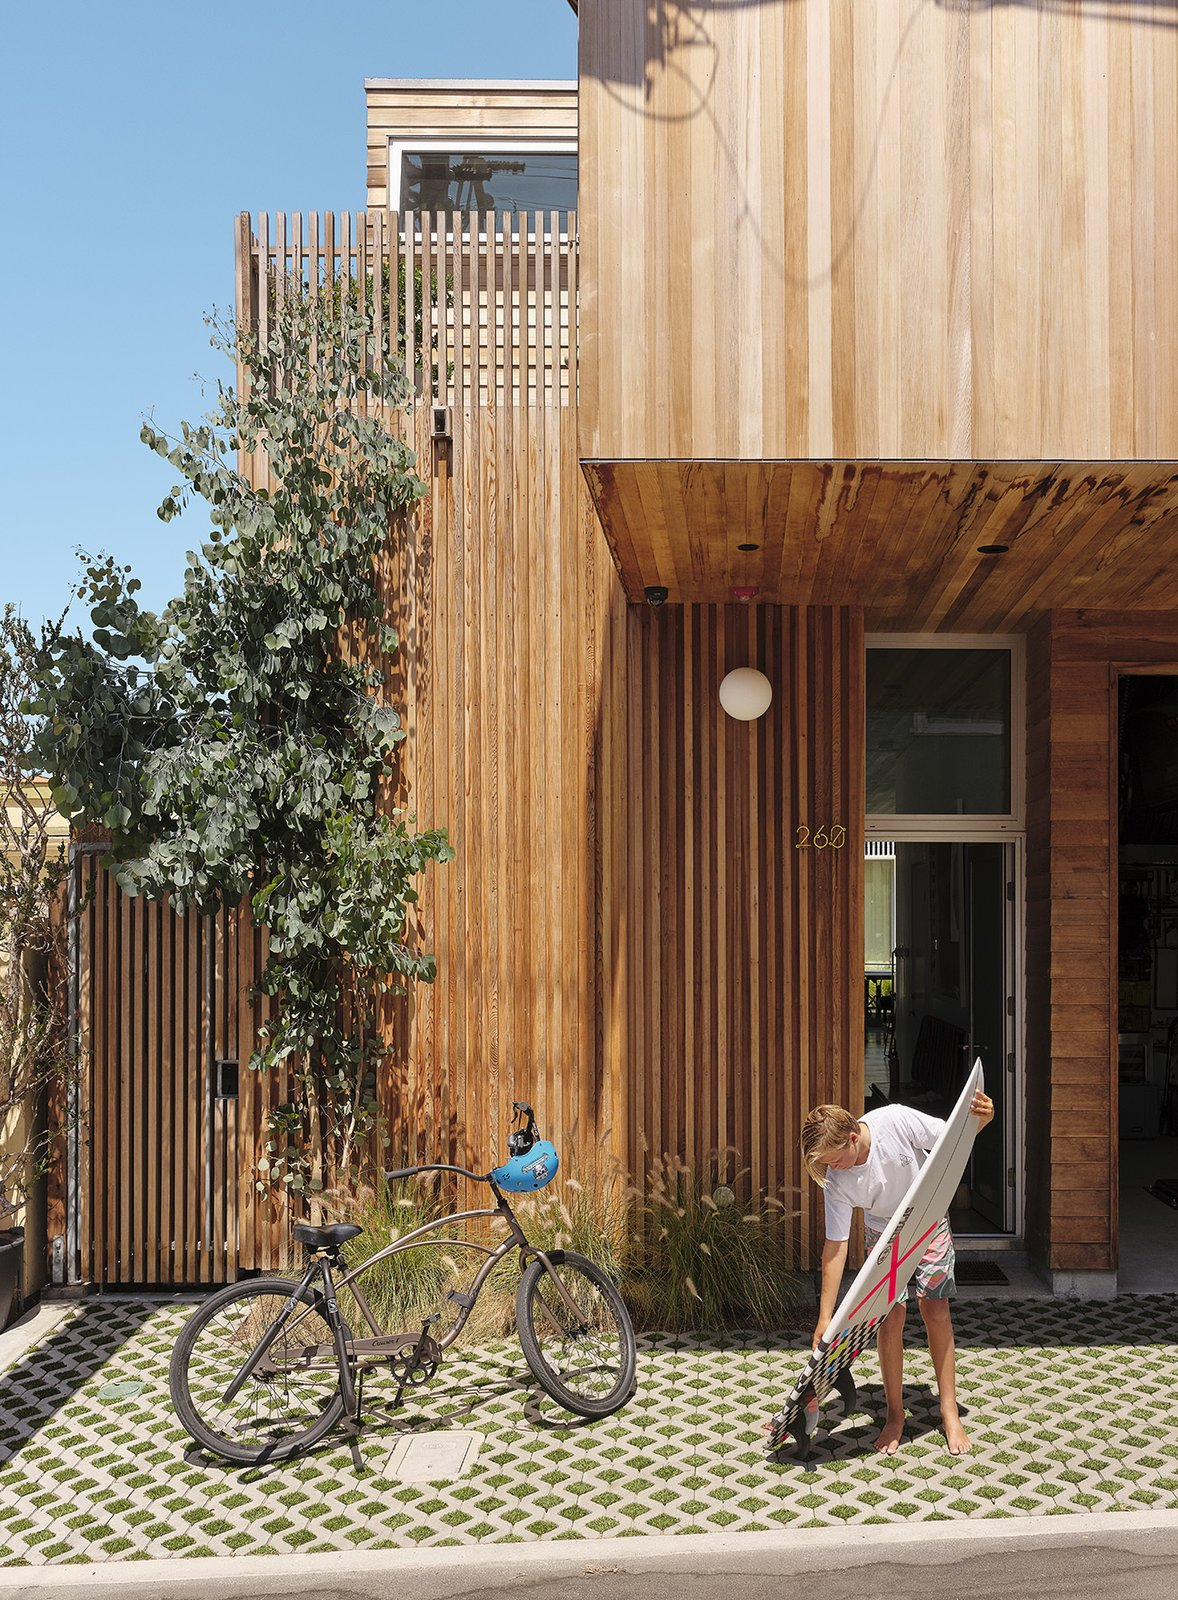 Doors, Swing Door Type, Exterior, and Wood The alley entrance is shaded by a cantilevered volume on the second floor. Turf-block pavers reduce runoff.  Photos from It Took a Neighborhood to Build This Beachside Bungalow